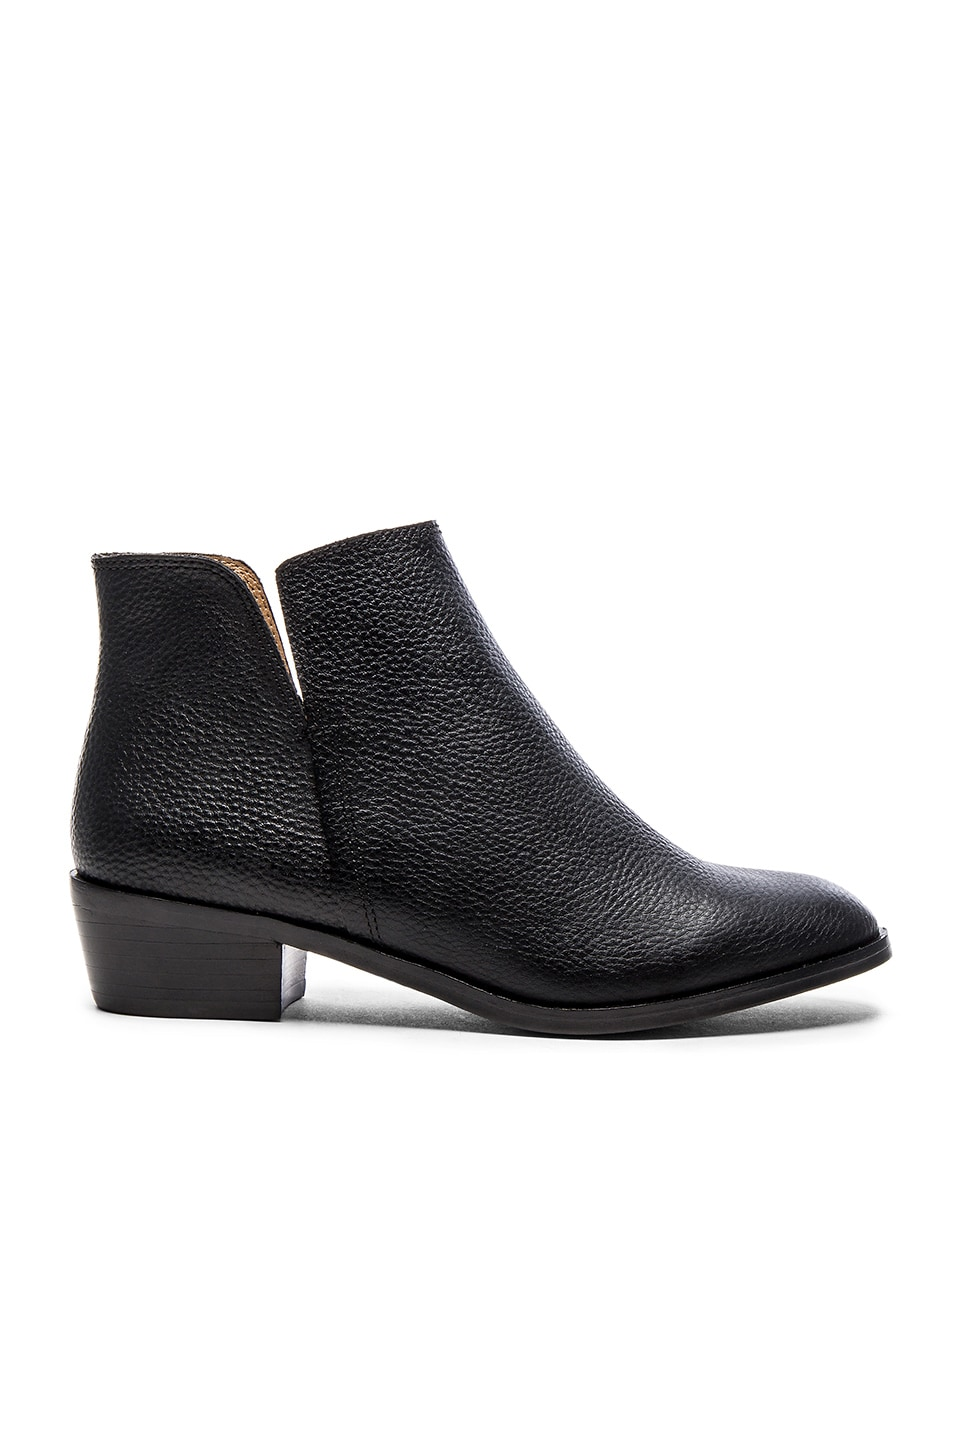 Splendid Hamptyn Bootie in Black Tumbled Leather